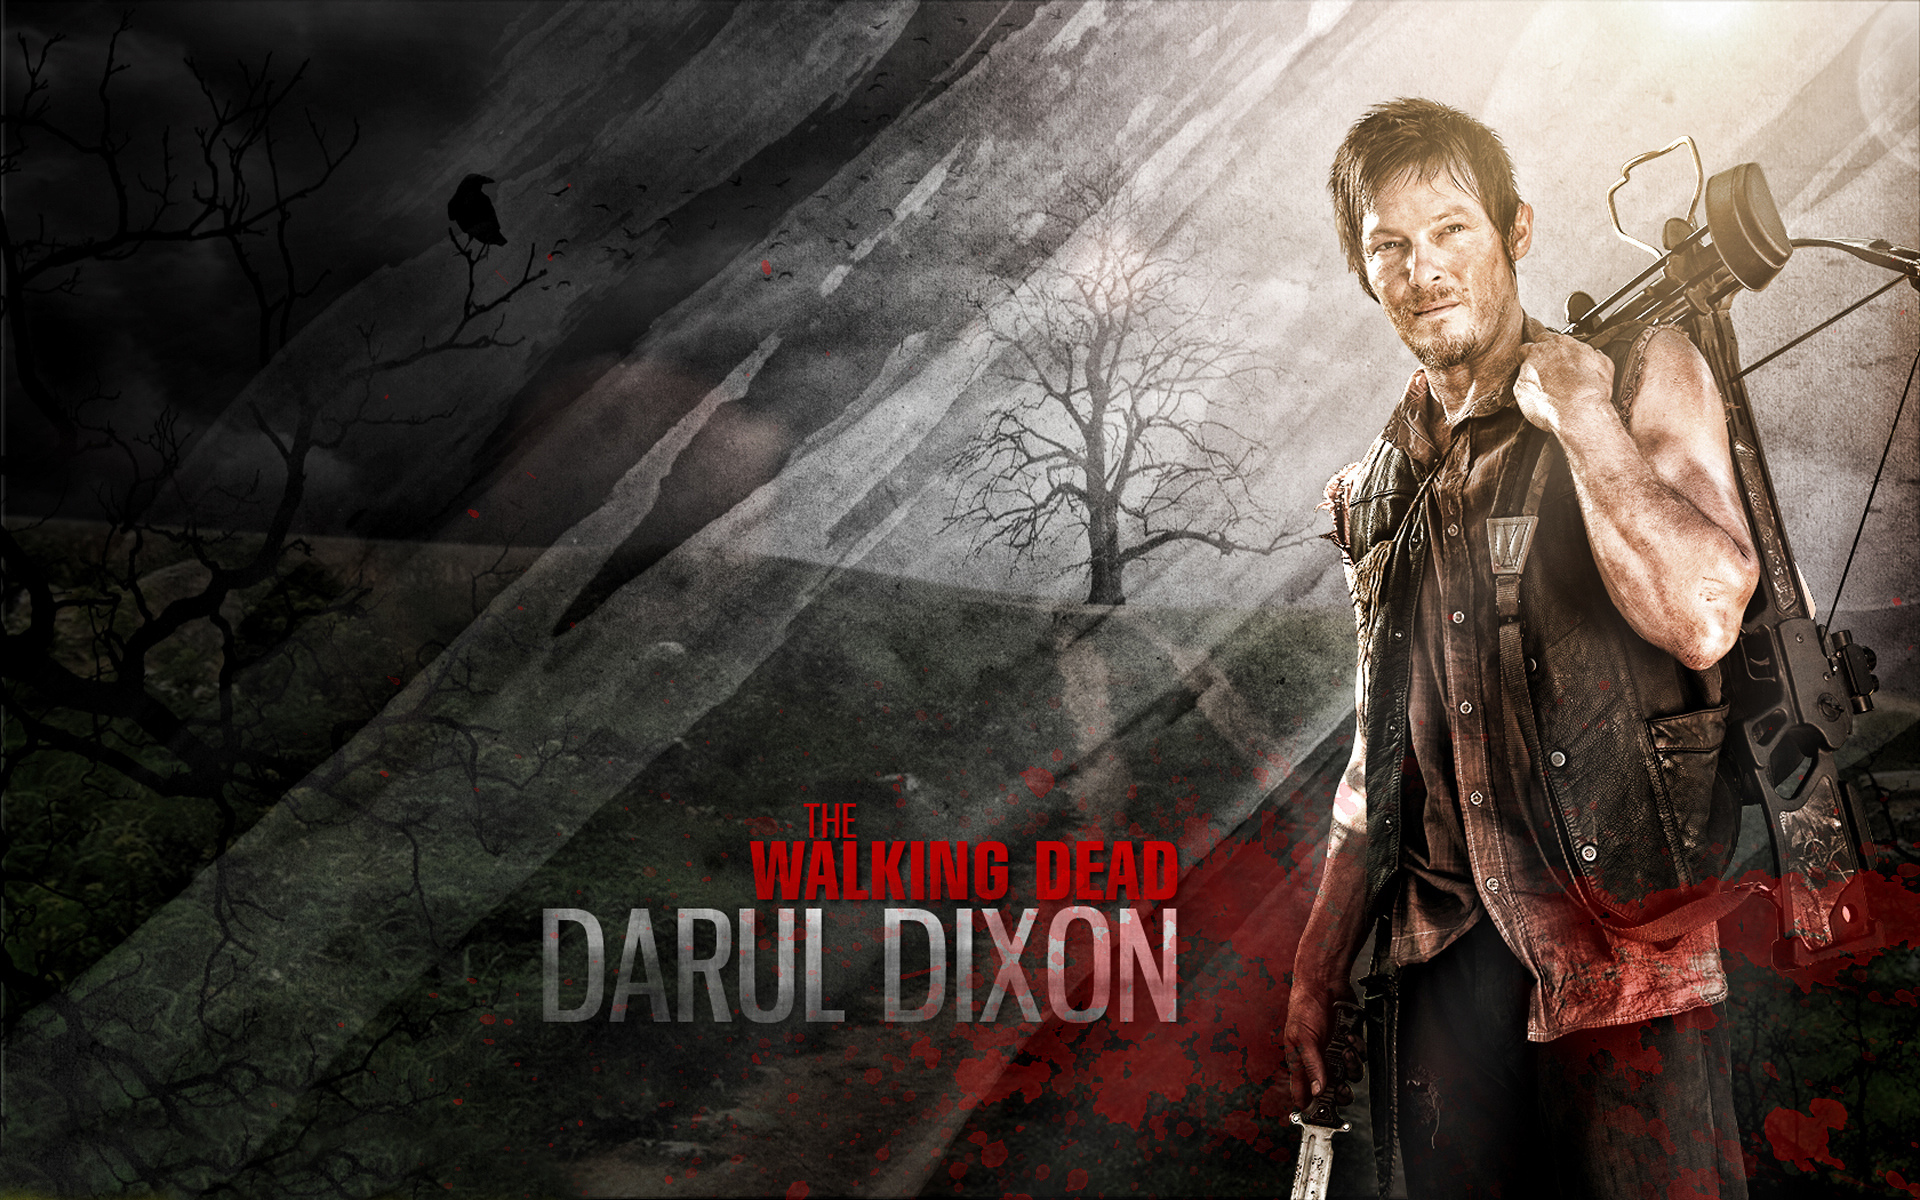 The Walking Dead Wallpapers55com Best Wallpapers For PCs Laptops 1920x1200